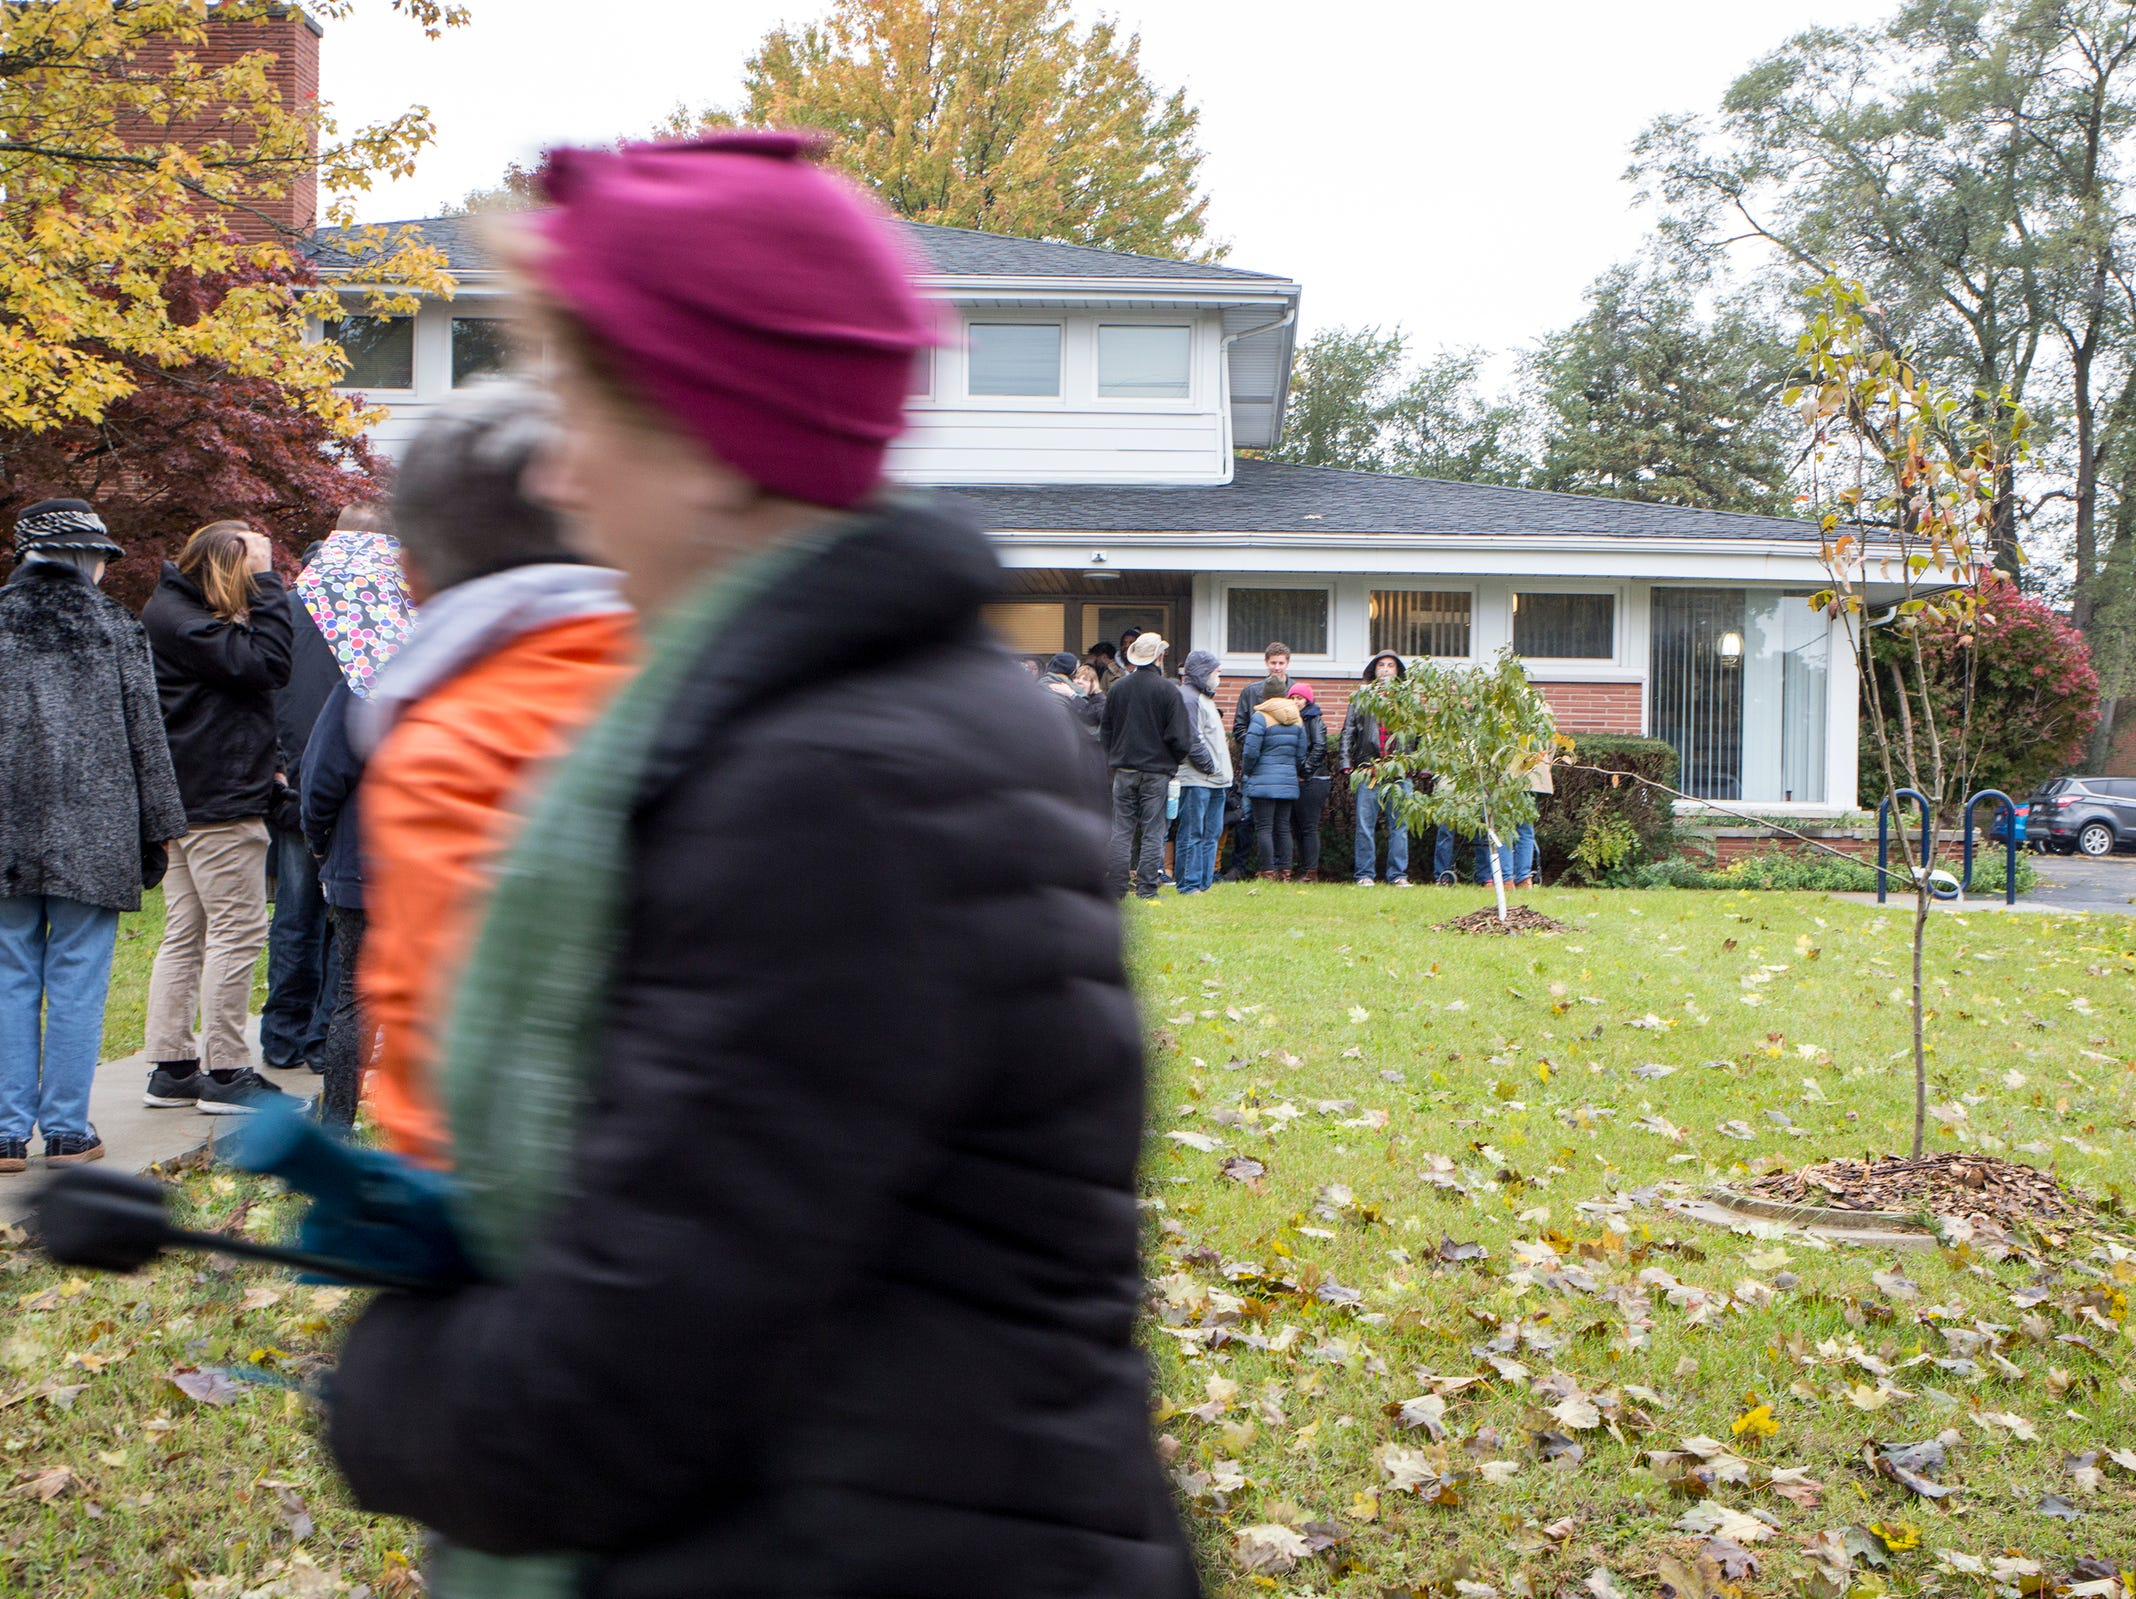 Mourners gather at Jewish Ferndale for a vigil, in honor of 11 people who were killed during a mass shooting in Pittsburgh, at Jewish Ferndale in Ferndale, Mich., Sunday, Oct. 28, 2018.